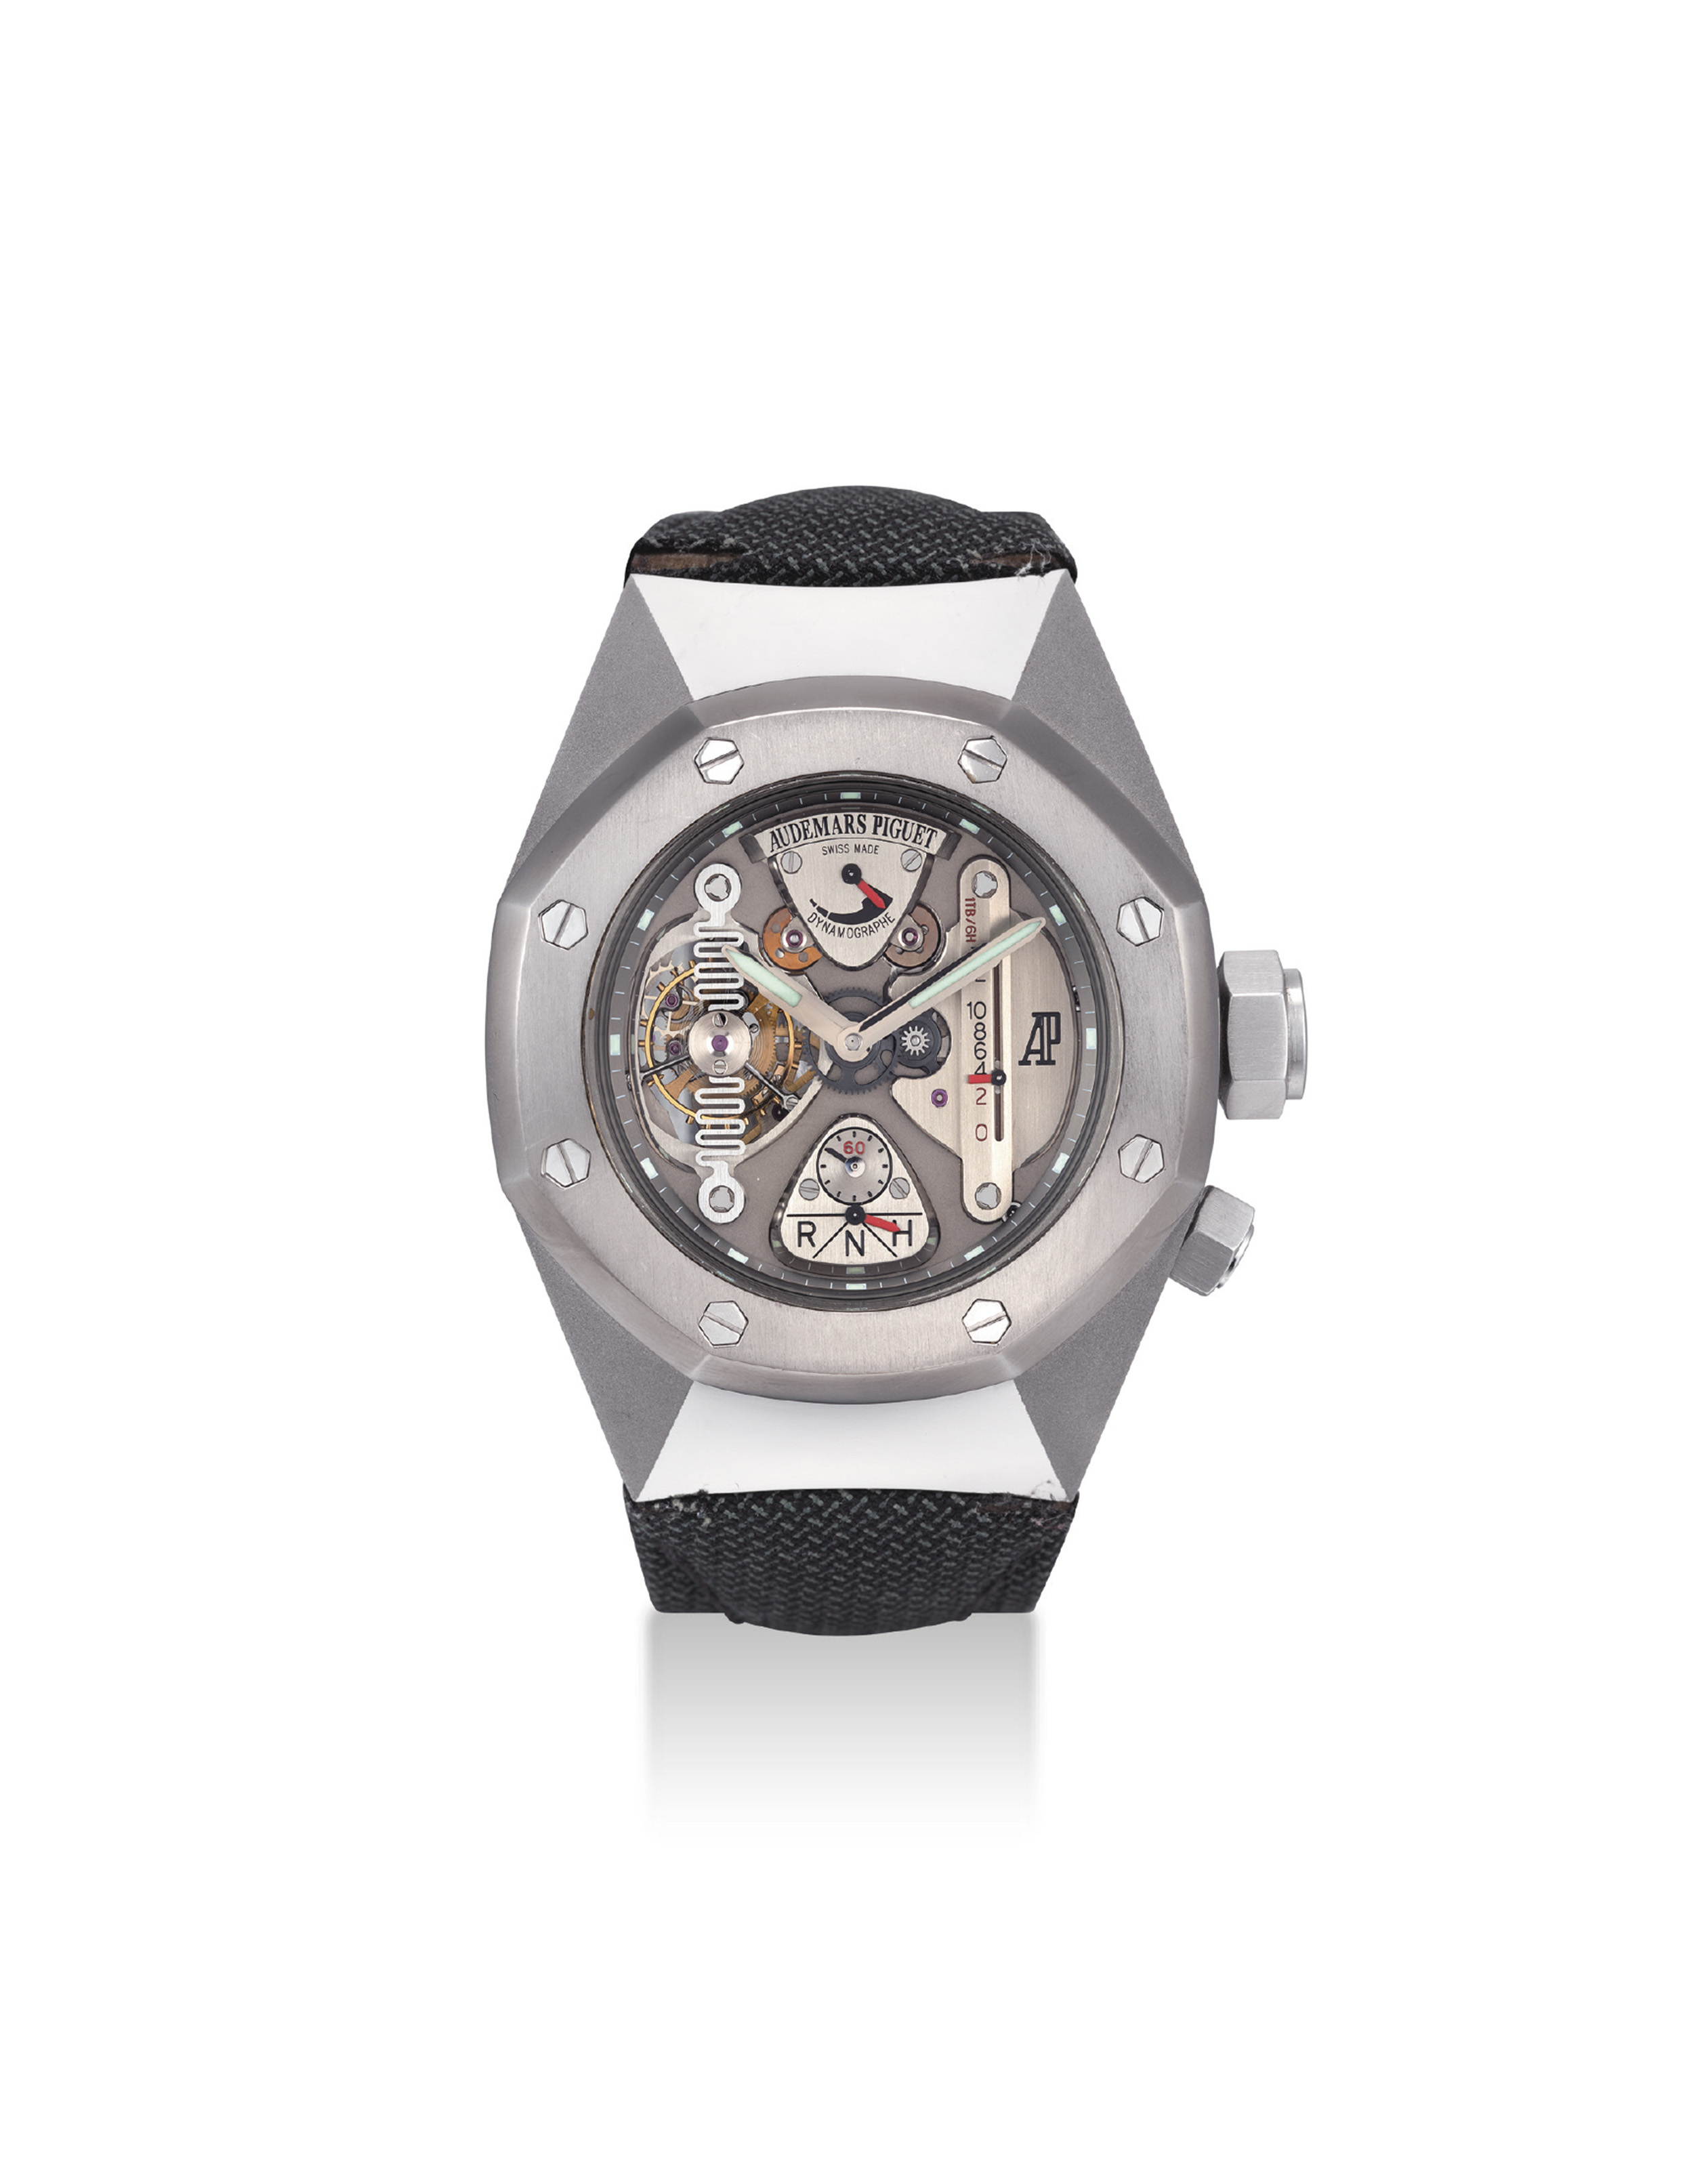 AUDEMARS PIGUET. A VERY FINE AND IMPORTANT ALACRITE 602 AND TITANIUM LIMITED EDITION TONNEAU-SHAPED SEMI-SKELETONISED TOURBILLON WRISTWATCH WITH POWER RESERVE AND DYNAMOGRAPHE INDICATION